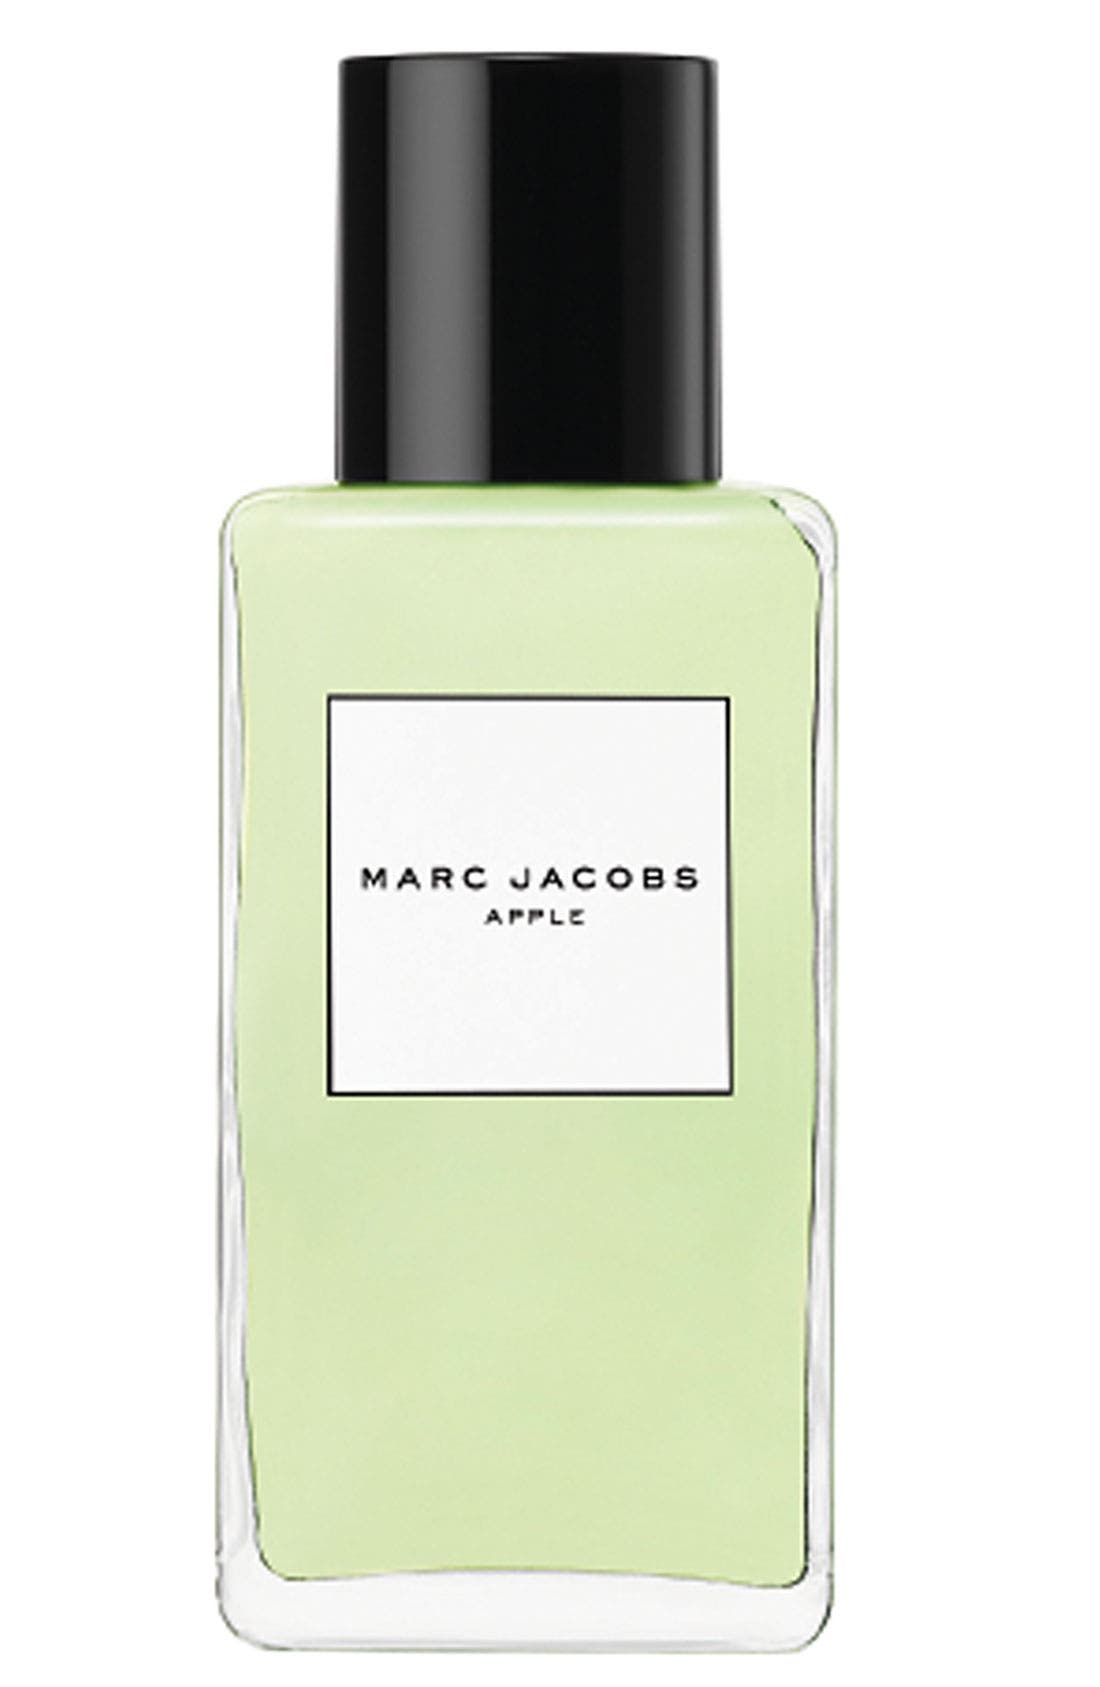 MARC JACOBS, 'Apple' Splash Scent, Main thumbnail 1, color, 000